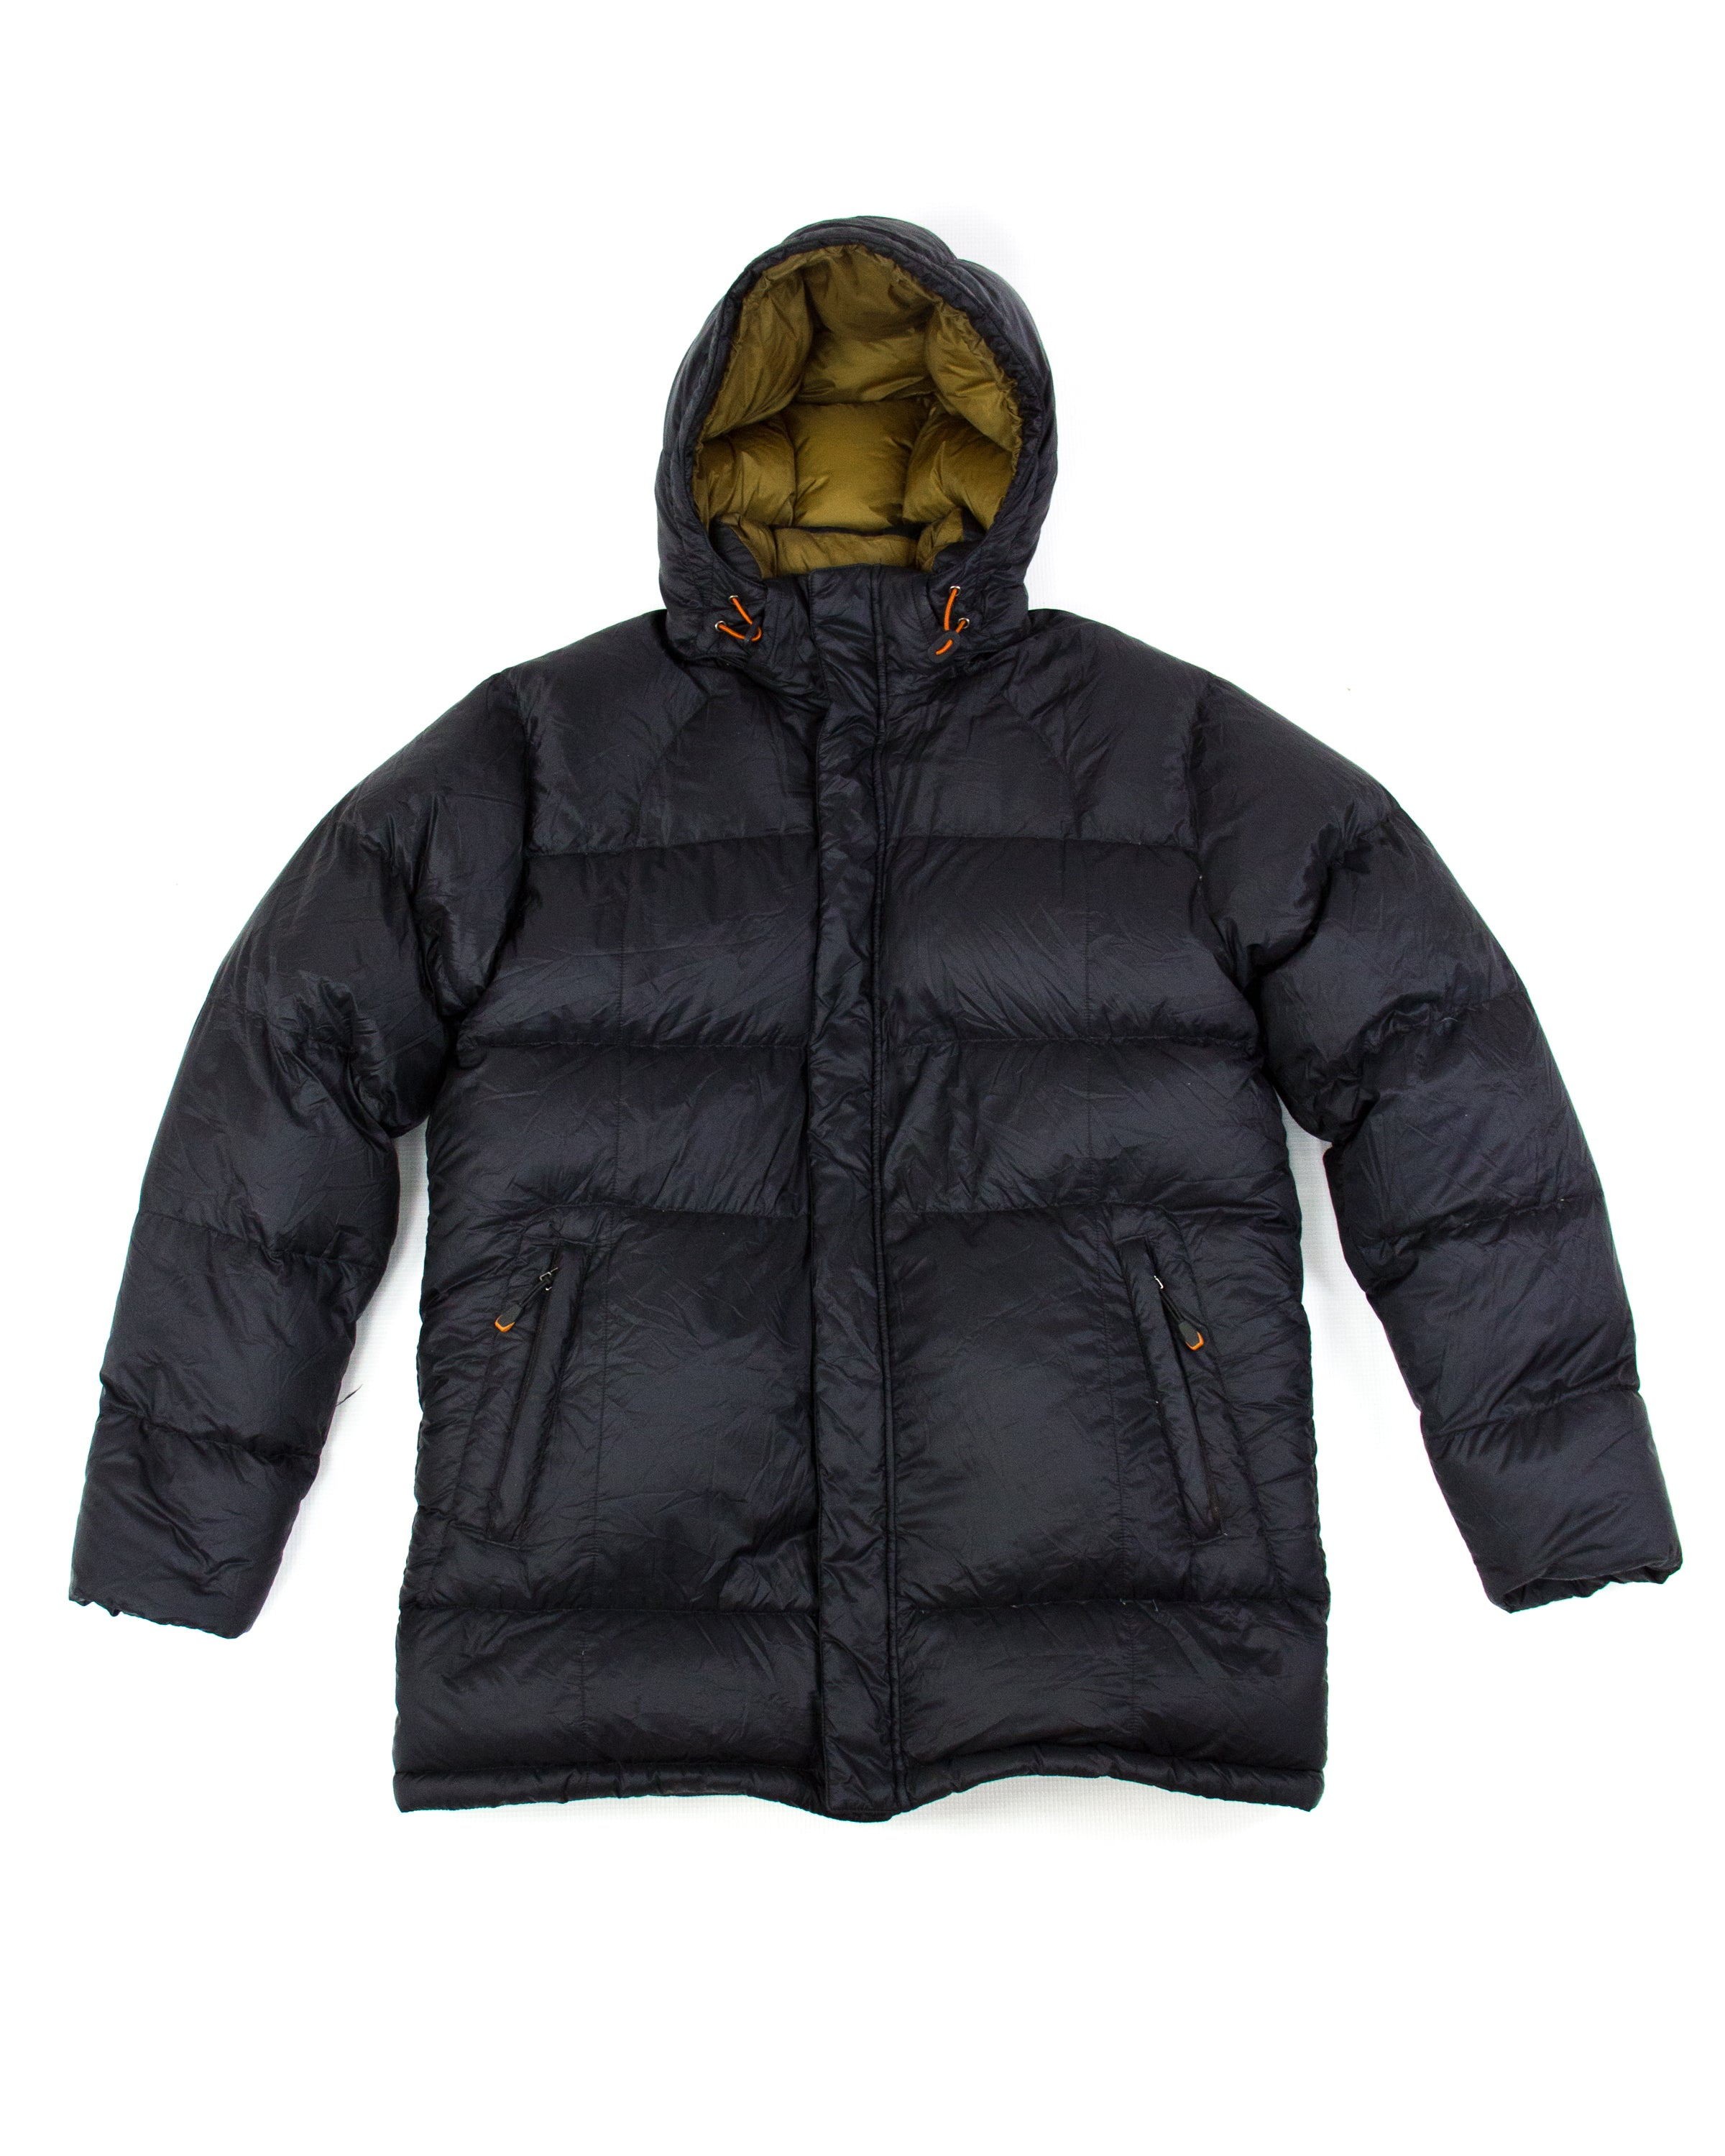 ERMENEGILDO ZEGNA SPORT Ultralight Down Hooded Puffer Jacket Parka, M - secondfirst